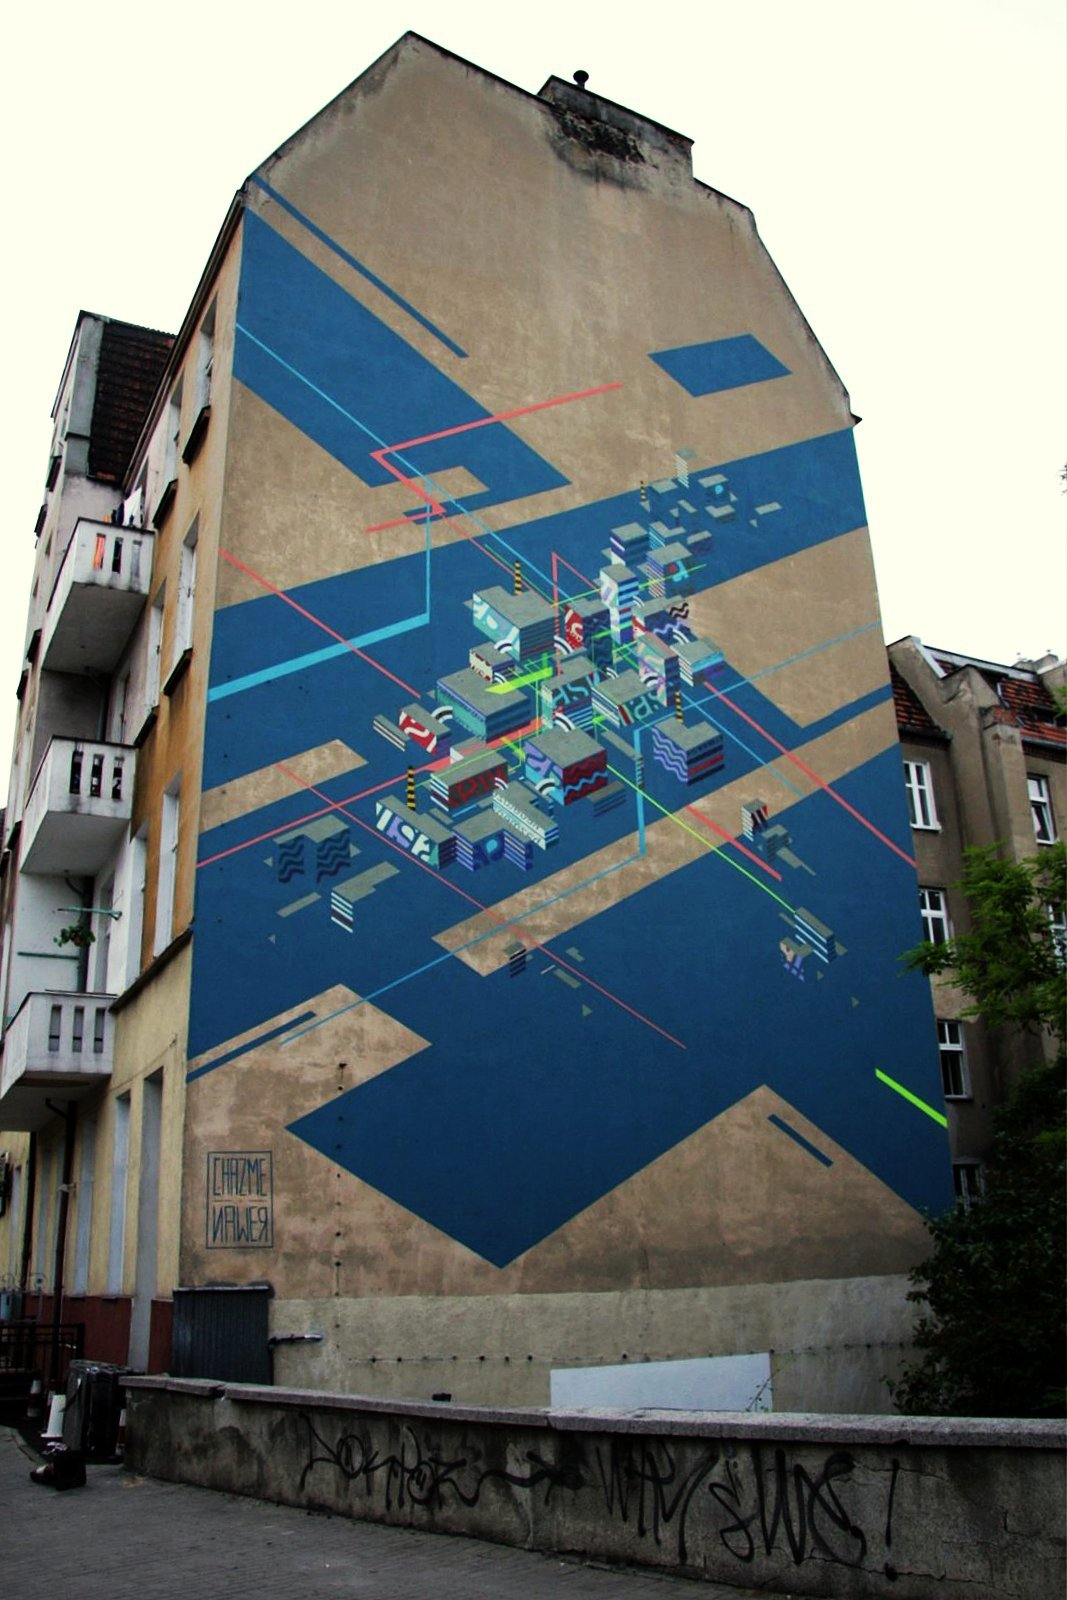 vimural:  Artists: Chazme and Nawer